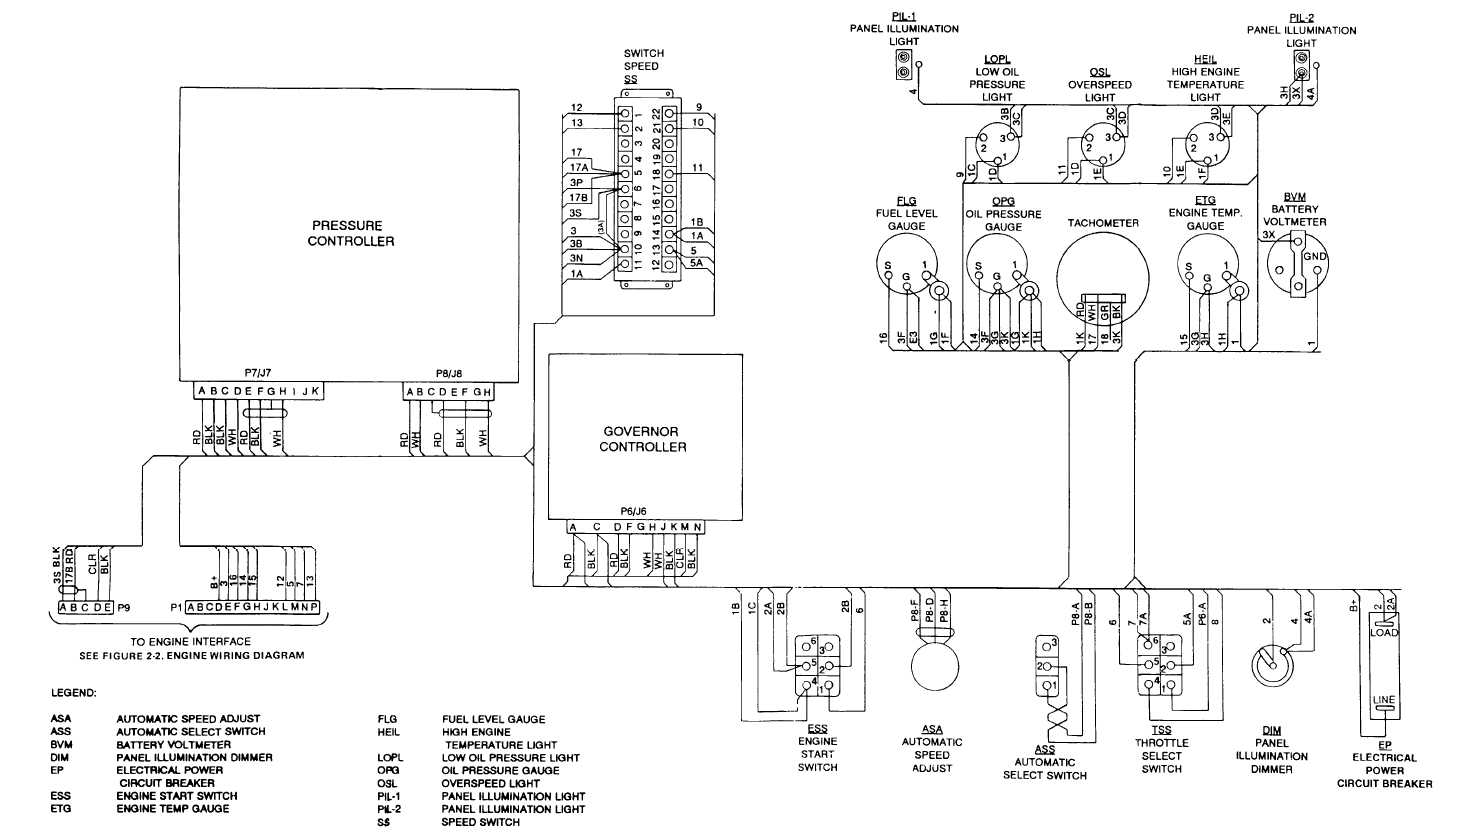 Figure 21 Control Panel Wiring Diagram Sheet 1 of 4